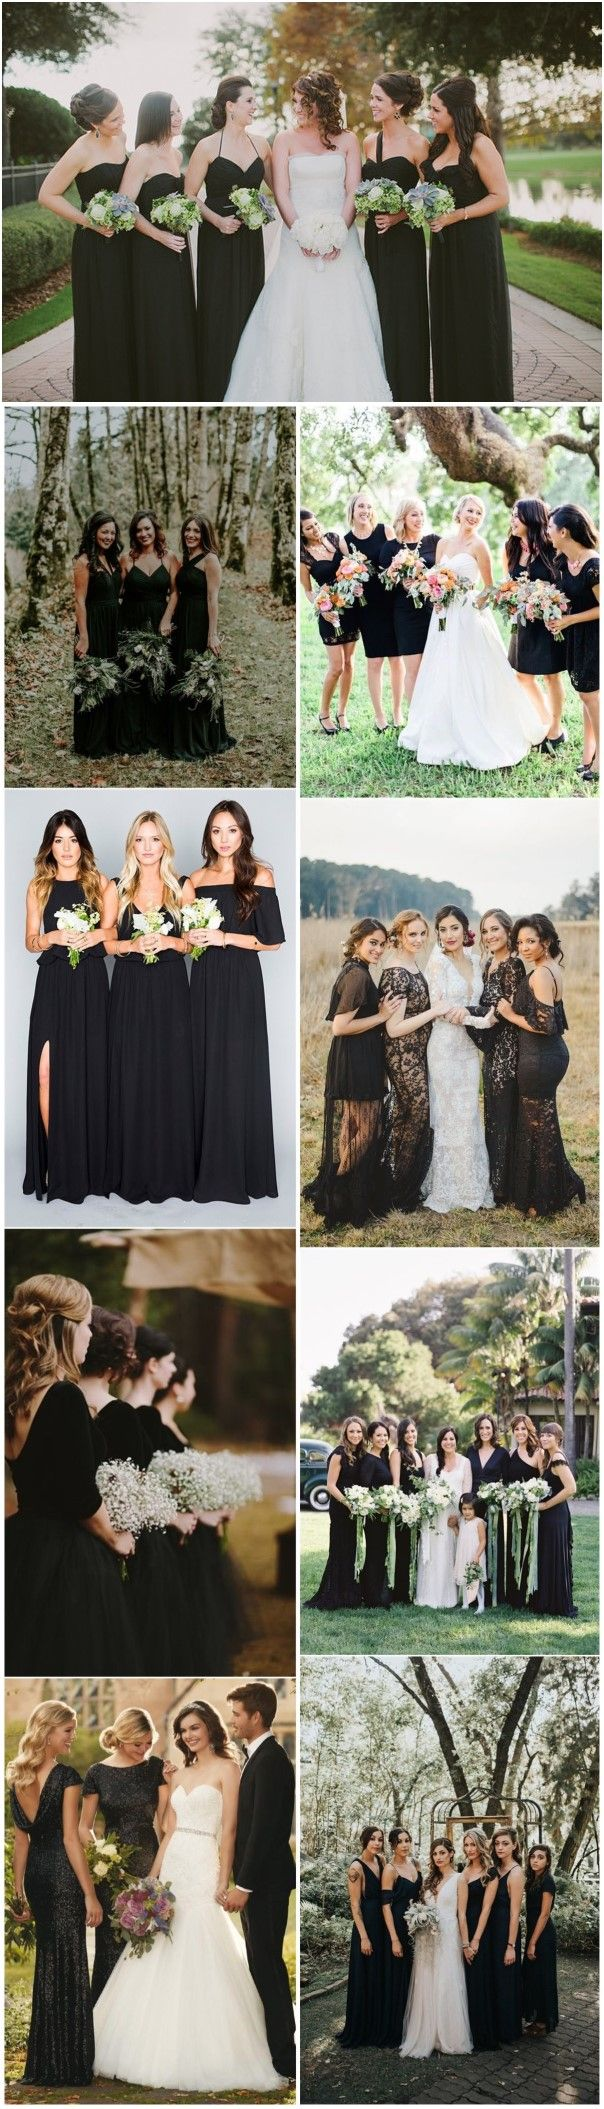 Bridesmaid Dresses » Don't Miss These 22    Black Bridesmaid Dresses for Your Fall and Winter Wedding! »   ❤️ See more:  http://www.weddinginclude.com/2017/06/dont-miss-these-black-bridesmaid-dresses-for-your-wedding/